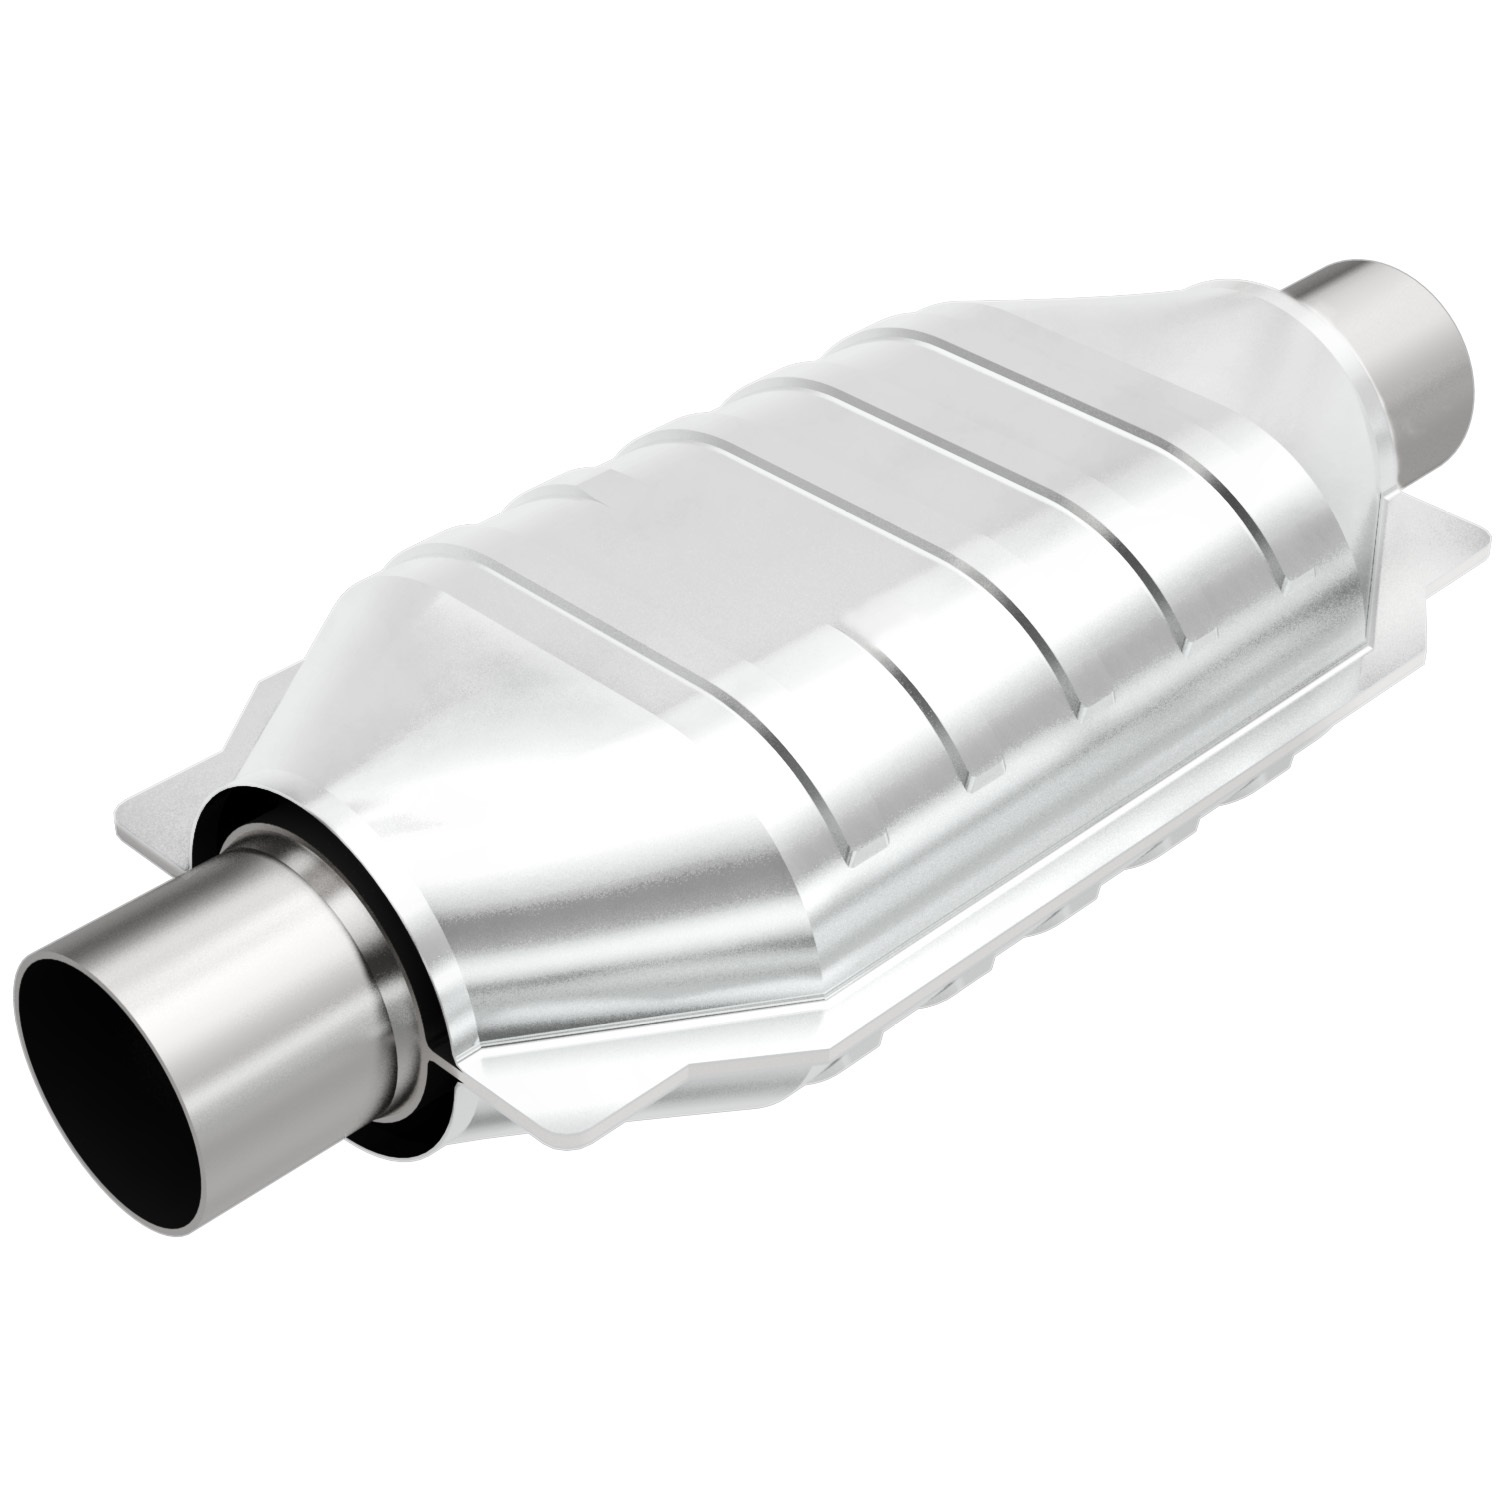 MagnaFlow Exhaust Products Catalytic Converter (14109)